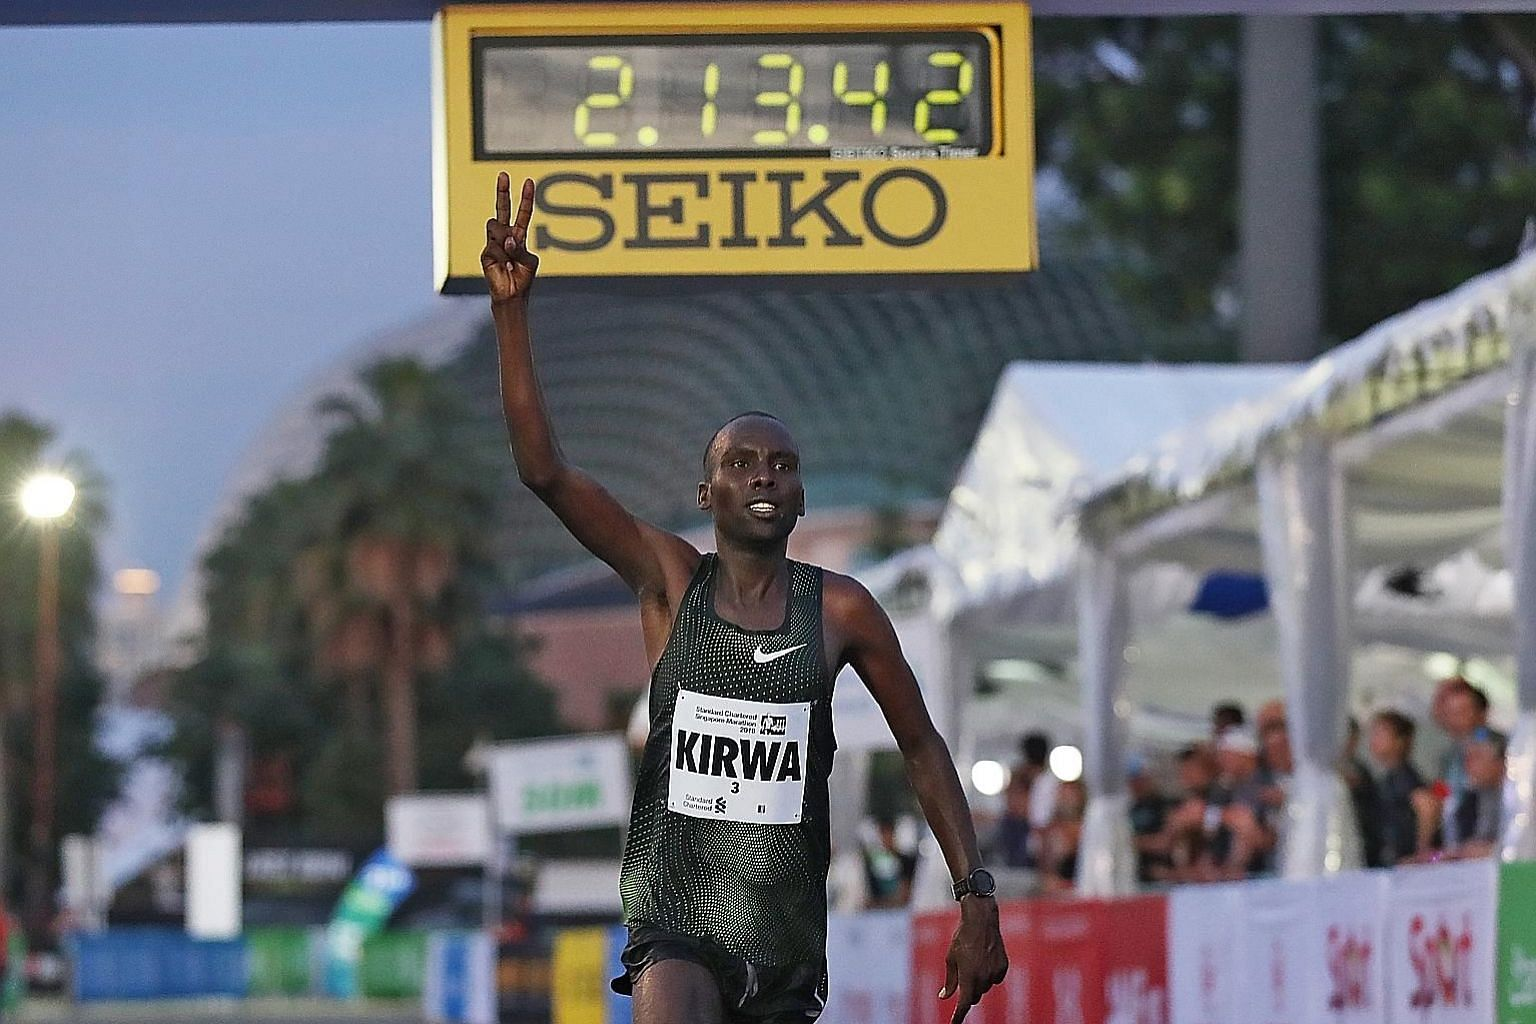 Kenyan Felix Kiptoo Kirwa after crossing the finish line of the Singapore Marathon last year. He has been stripped of his silver medal.